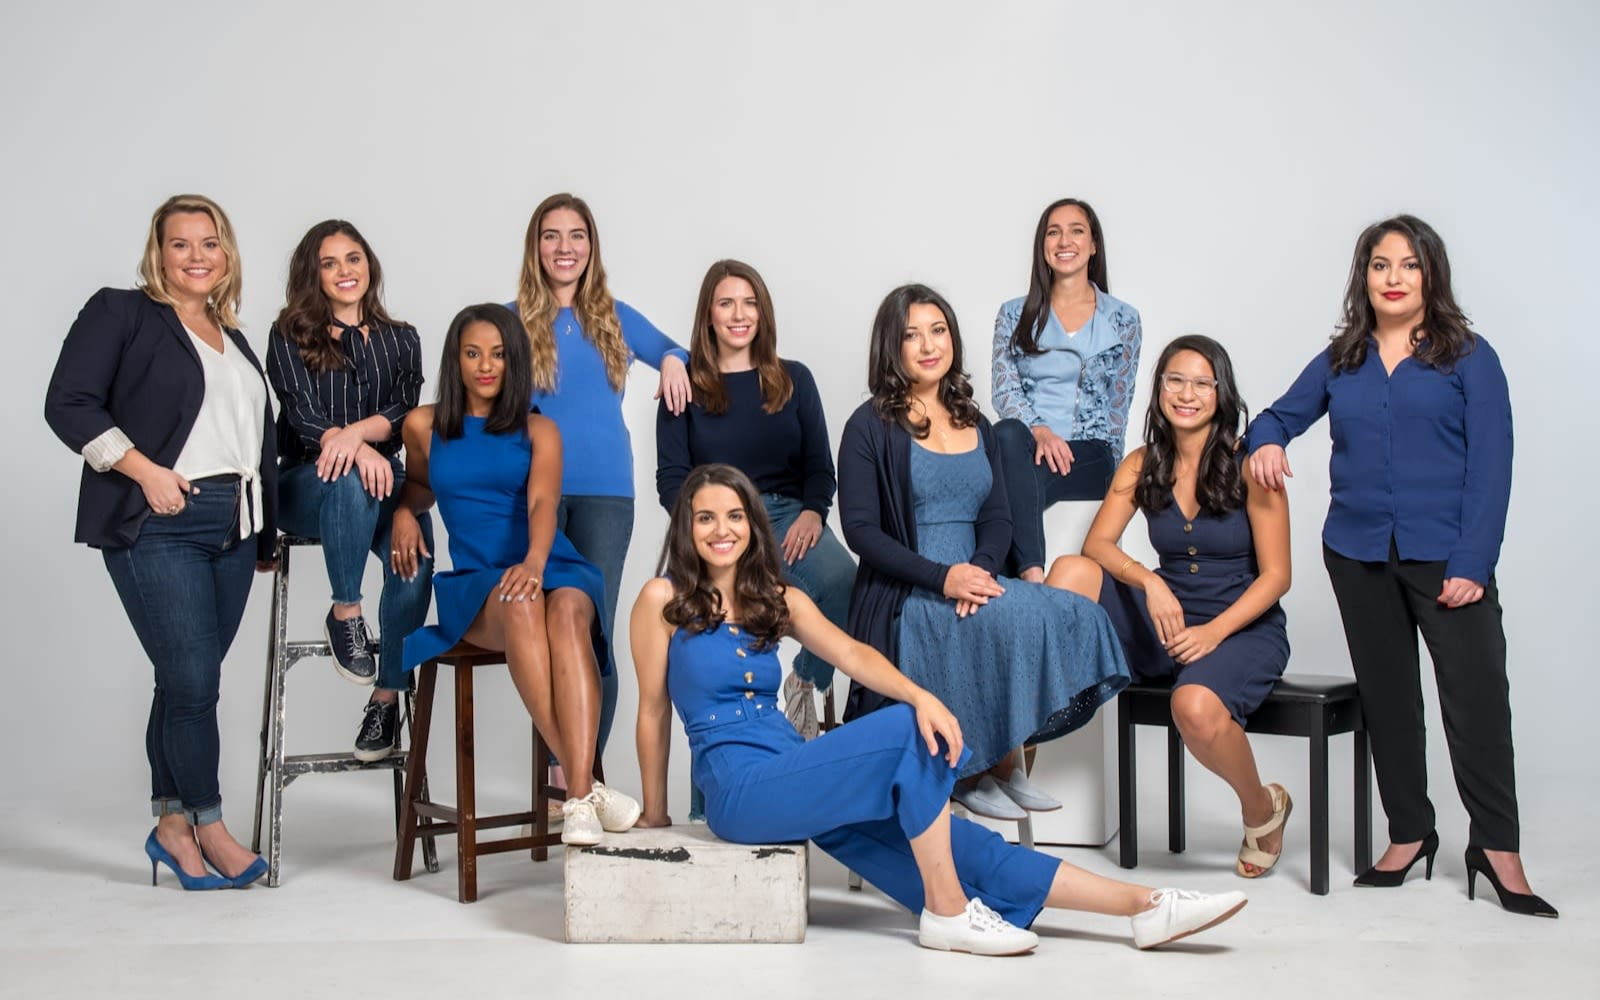 Molly Dillon with nine of her co-authors of Yes She Can smiling for a studio photo